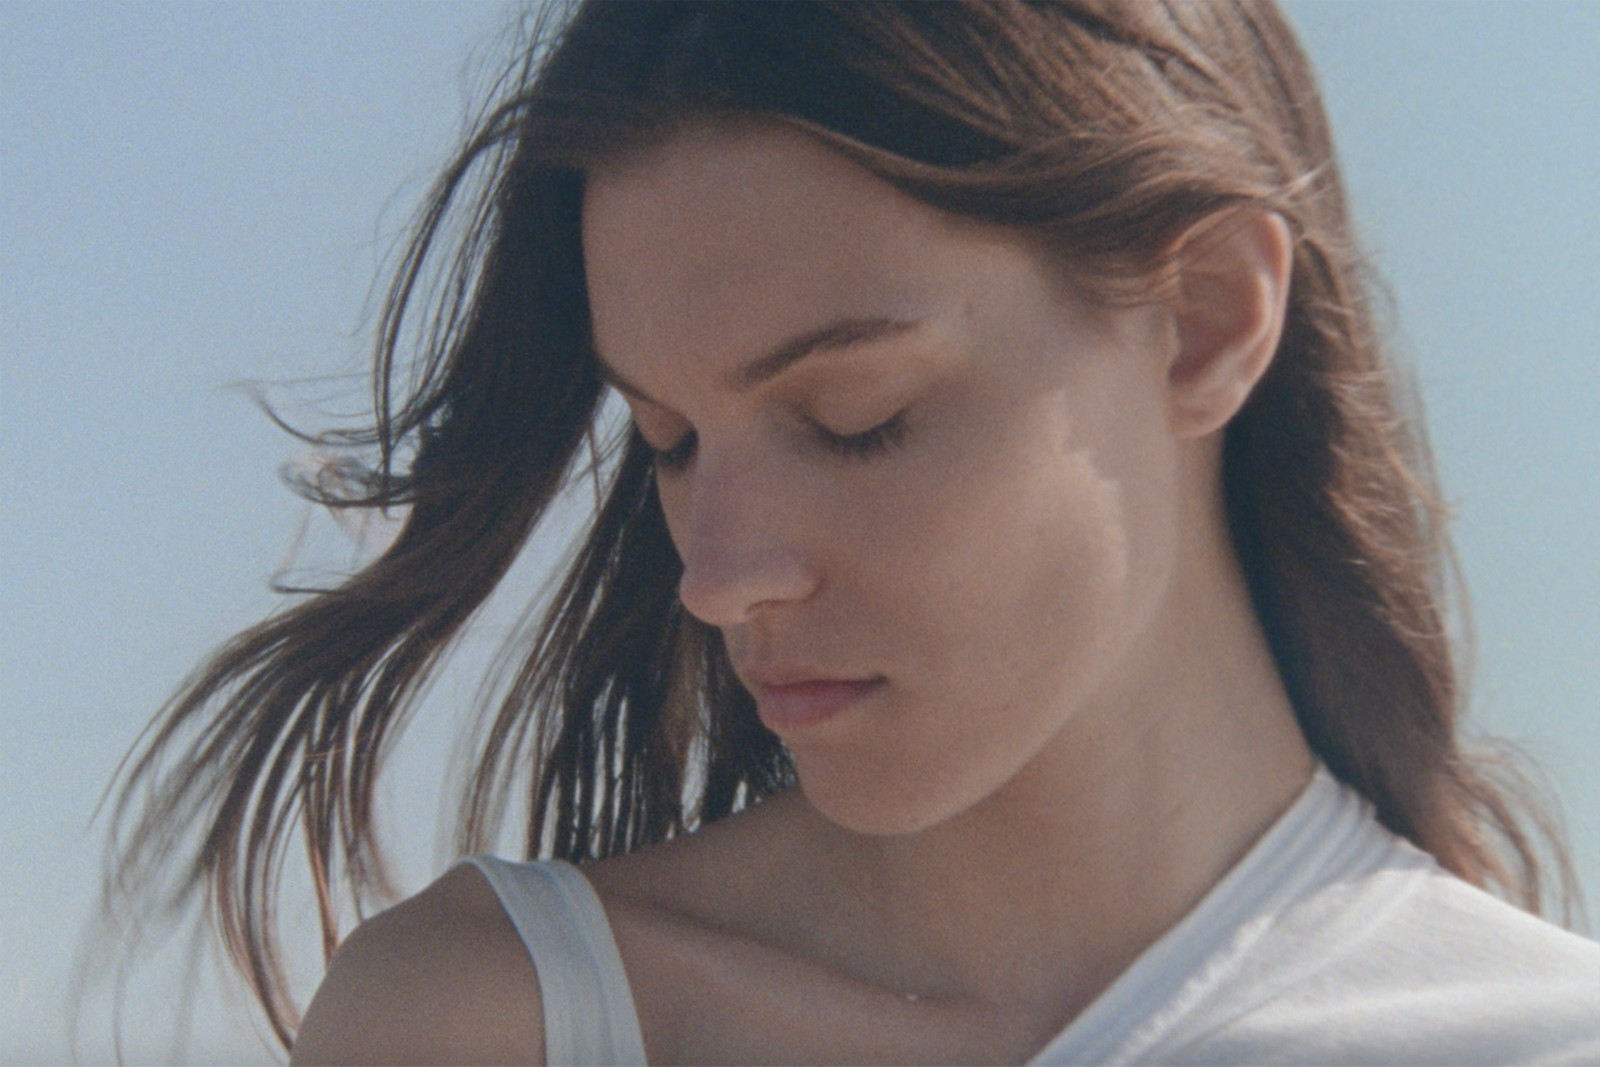 Charlotte Cardin Montreal Canada Canadian Music Artist Musician Singer Songwriter Phoenix Debut Album Anyone Who Loves Me Music Video